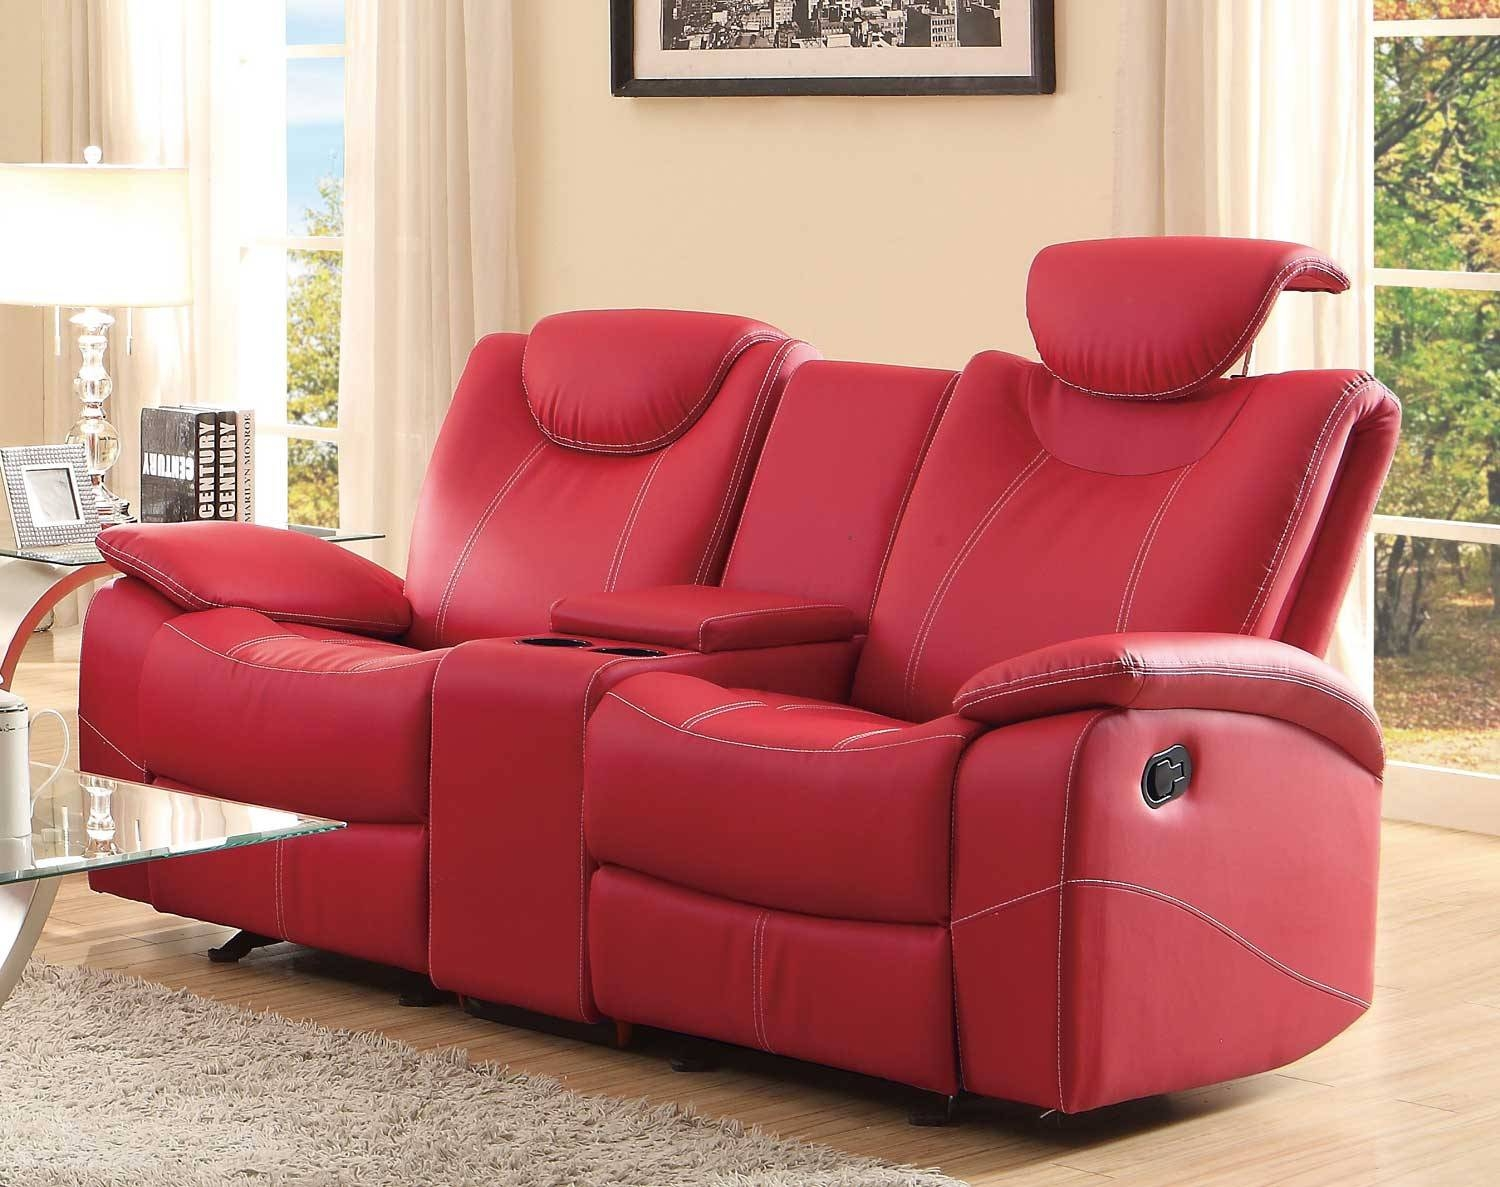 Sofas Center : Reclining Sofas With Consoles Dual Sofa Center inside Sofas With Consoles (Image 26 of 30)